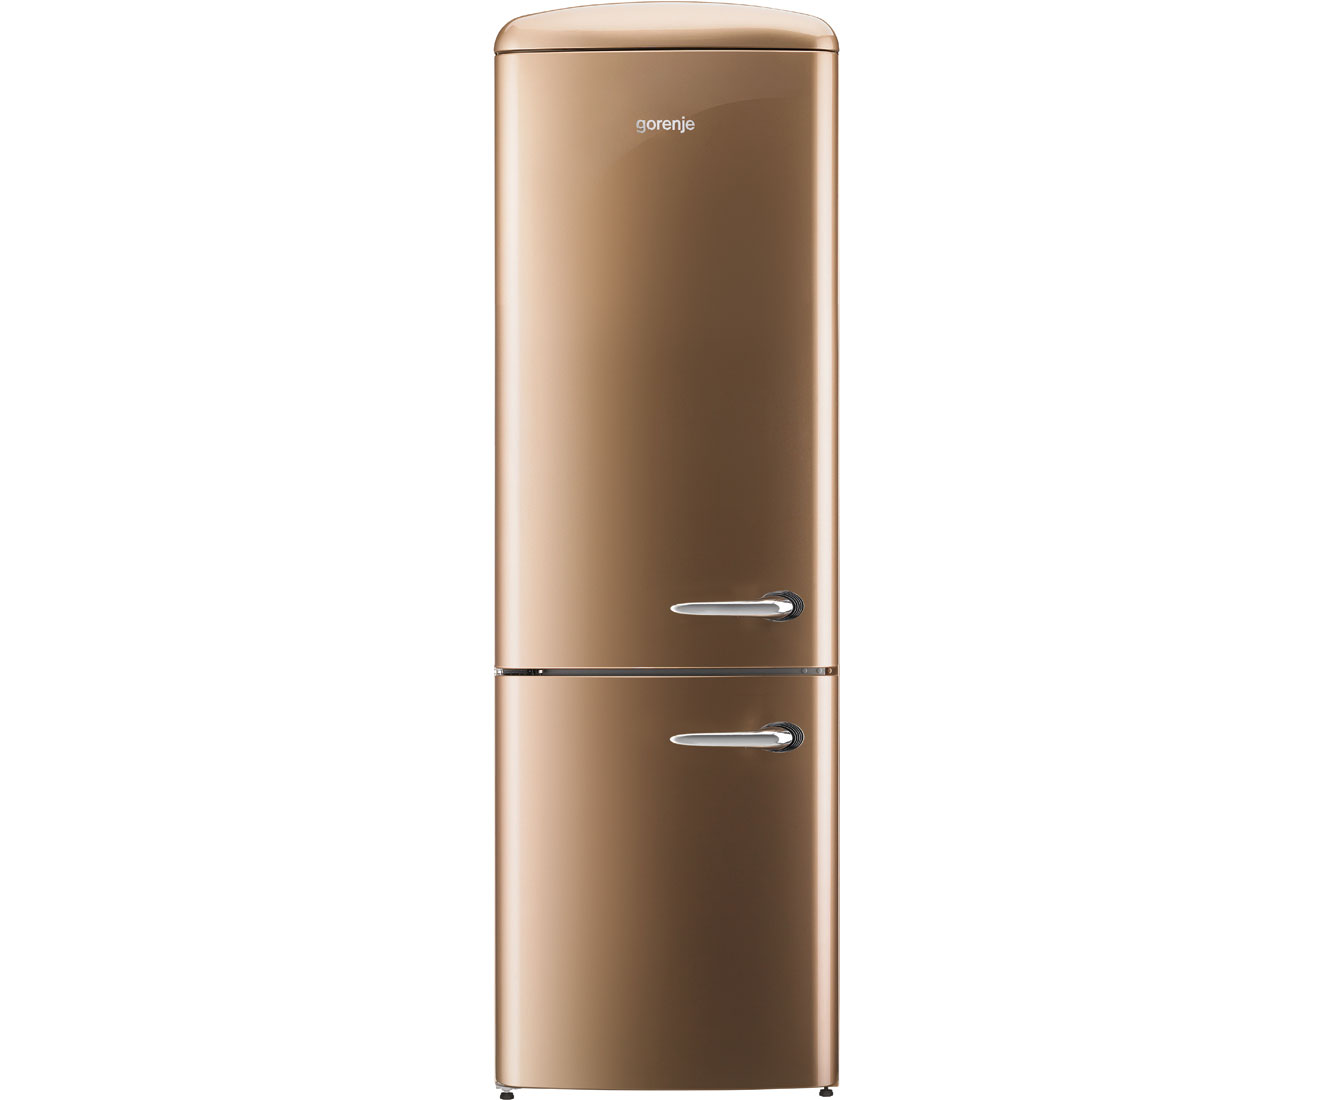 Retro Kühlschrank No Frost : Gorenje retro collection onrk 193 co l kühl gefrierkombination mit